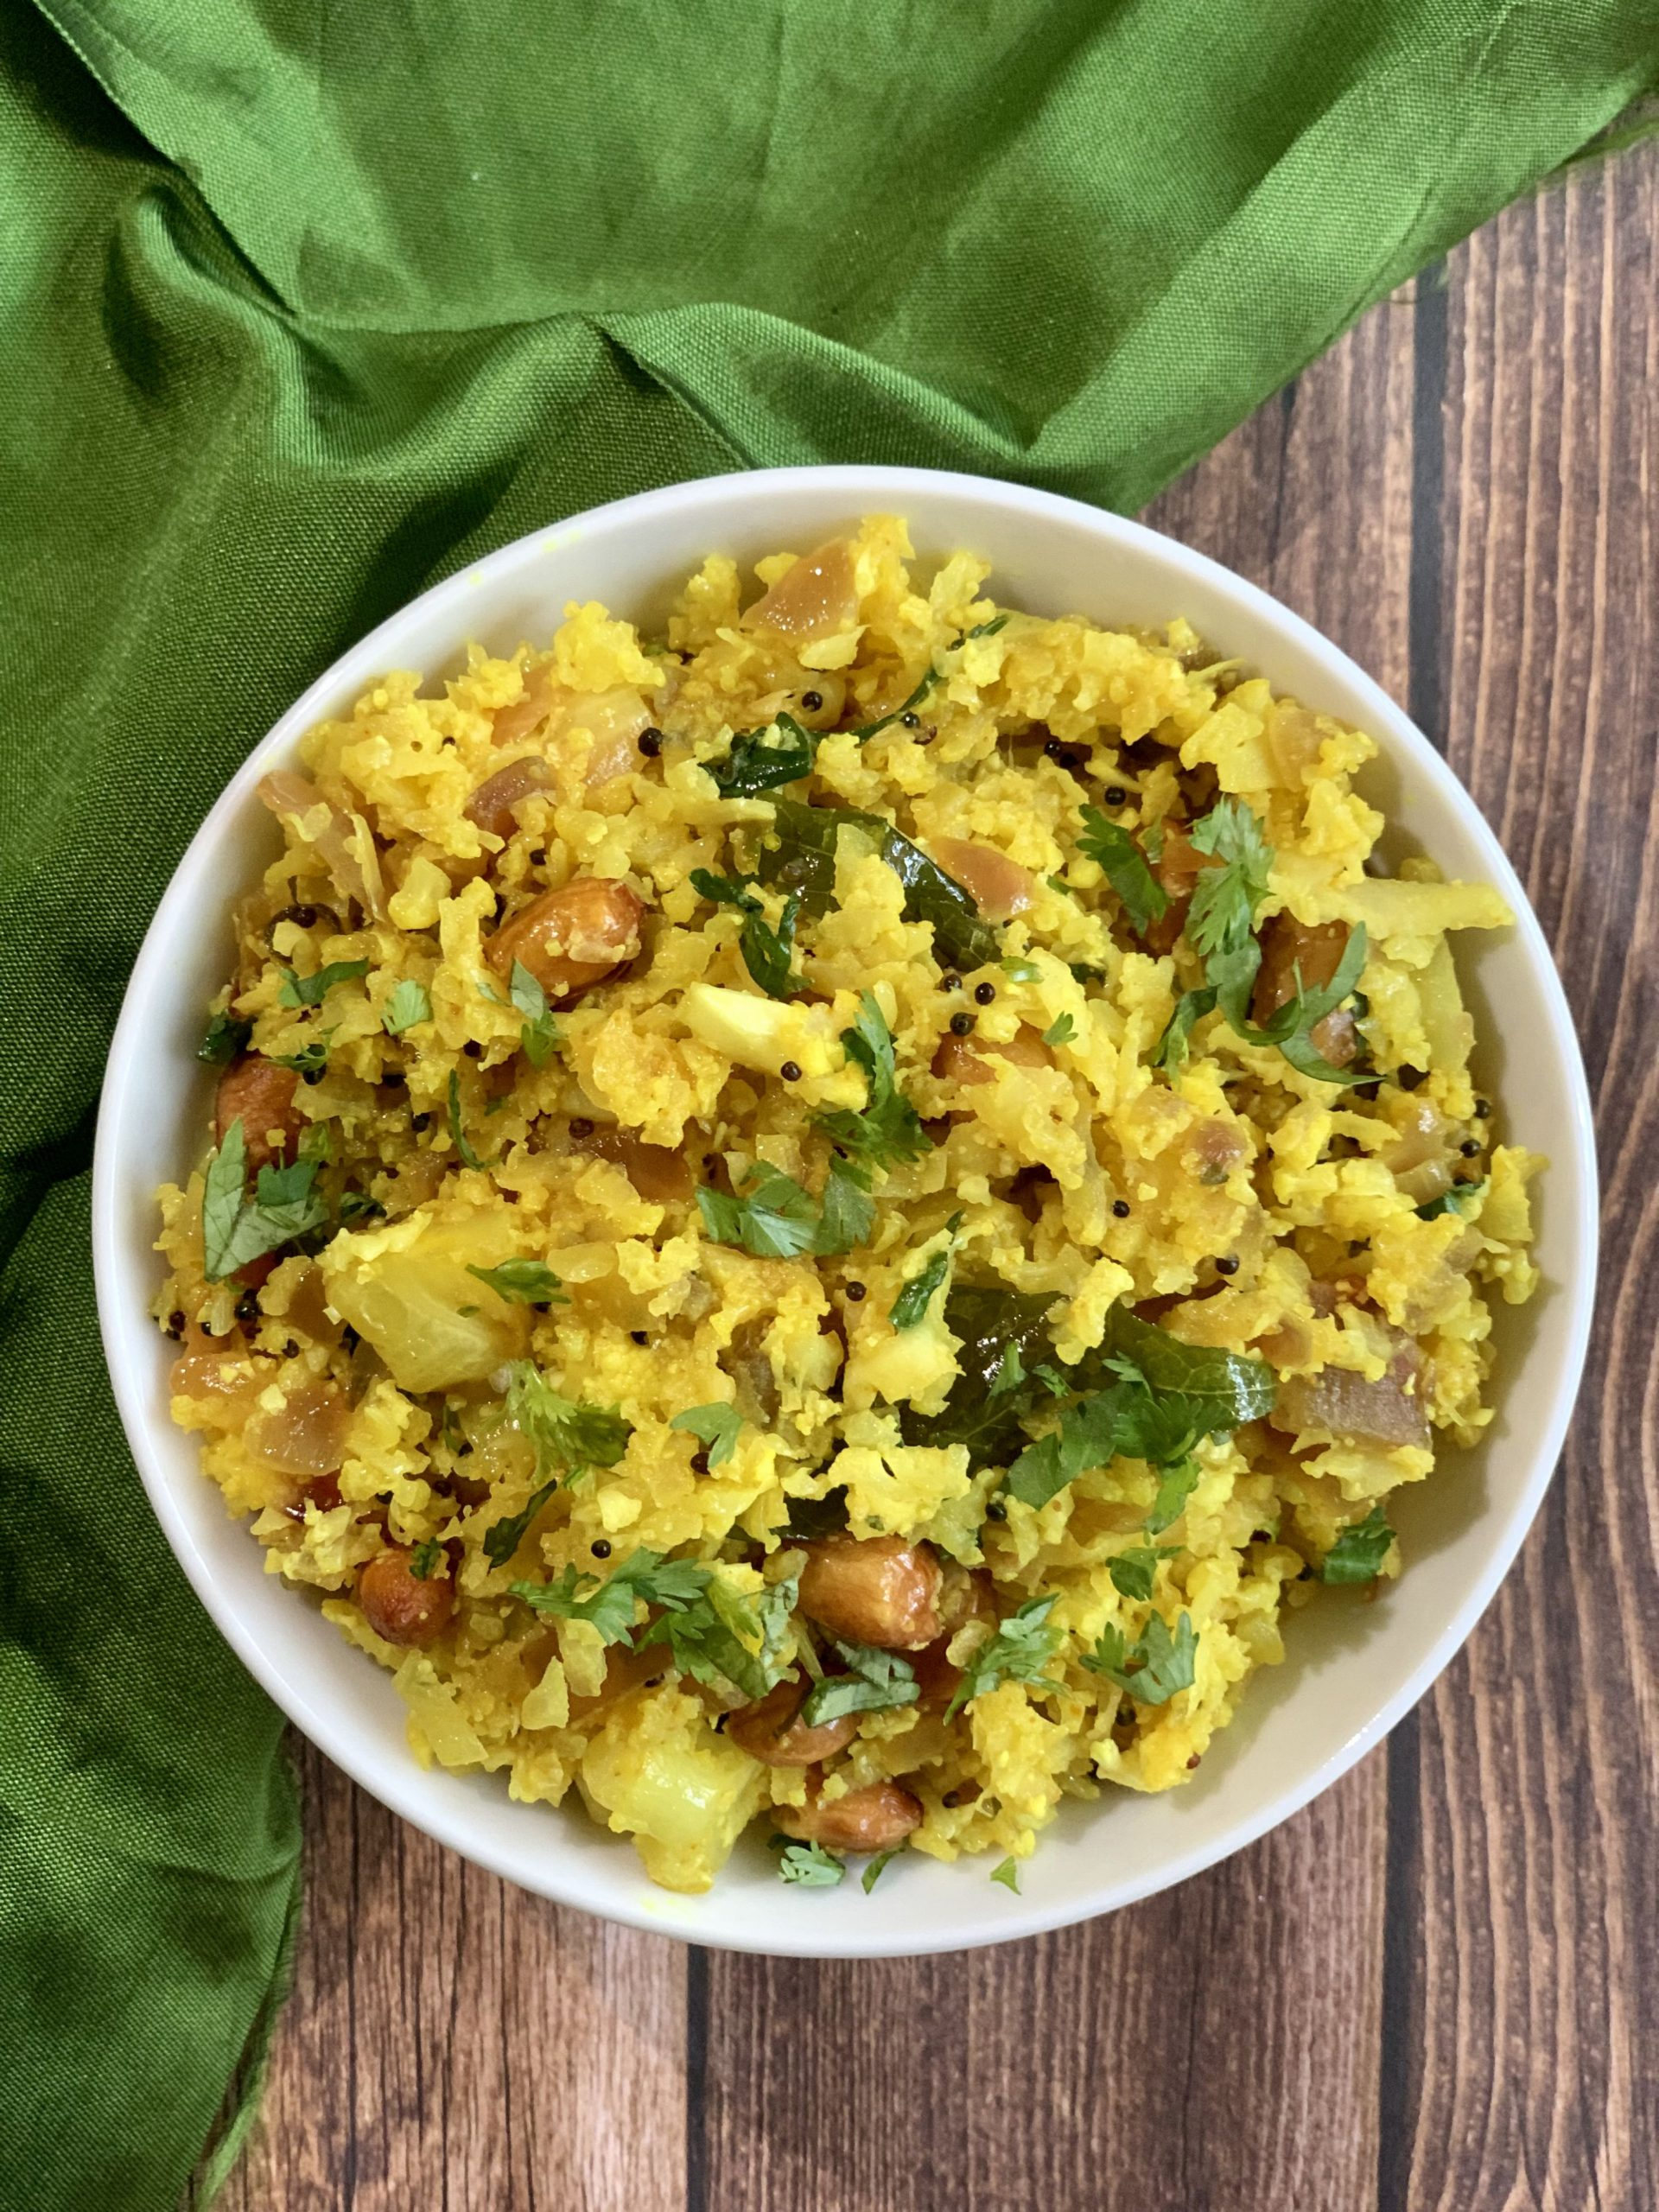 Keto Poha|Cauliflower Poha - Breakfast Recipes Using Poha